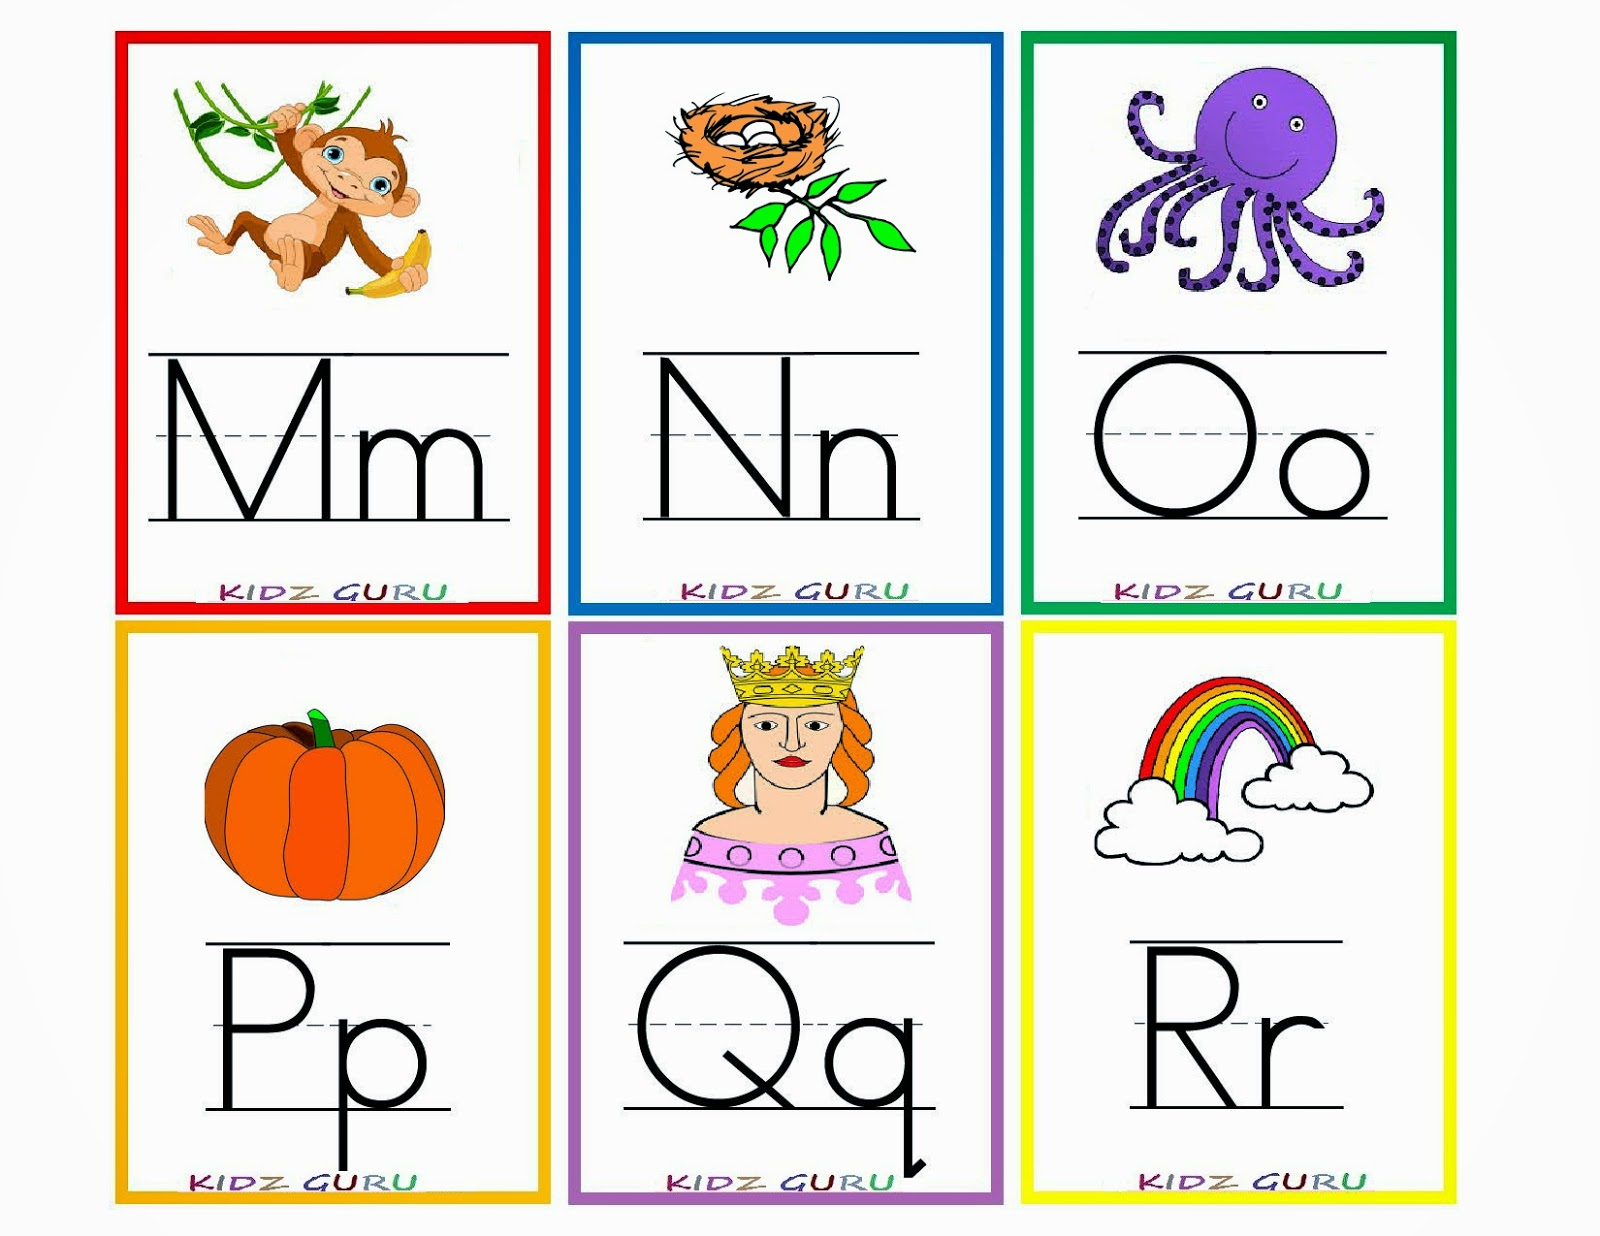 Comprehensive image with printable alphabet flashcards